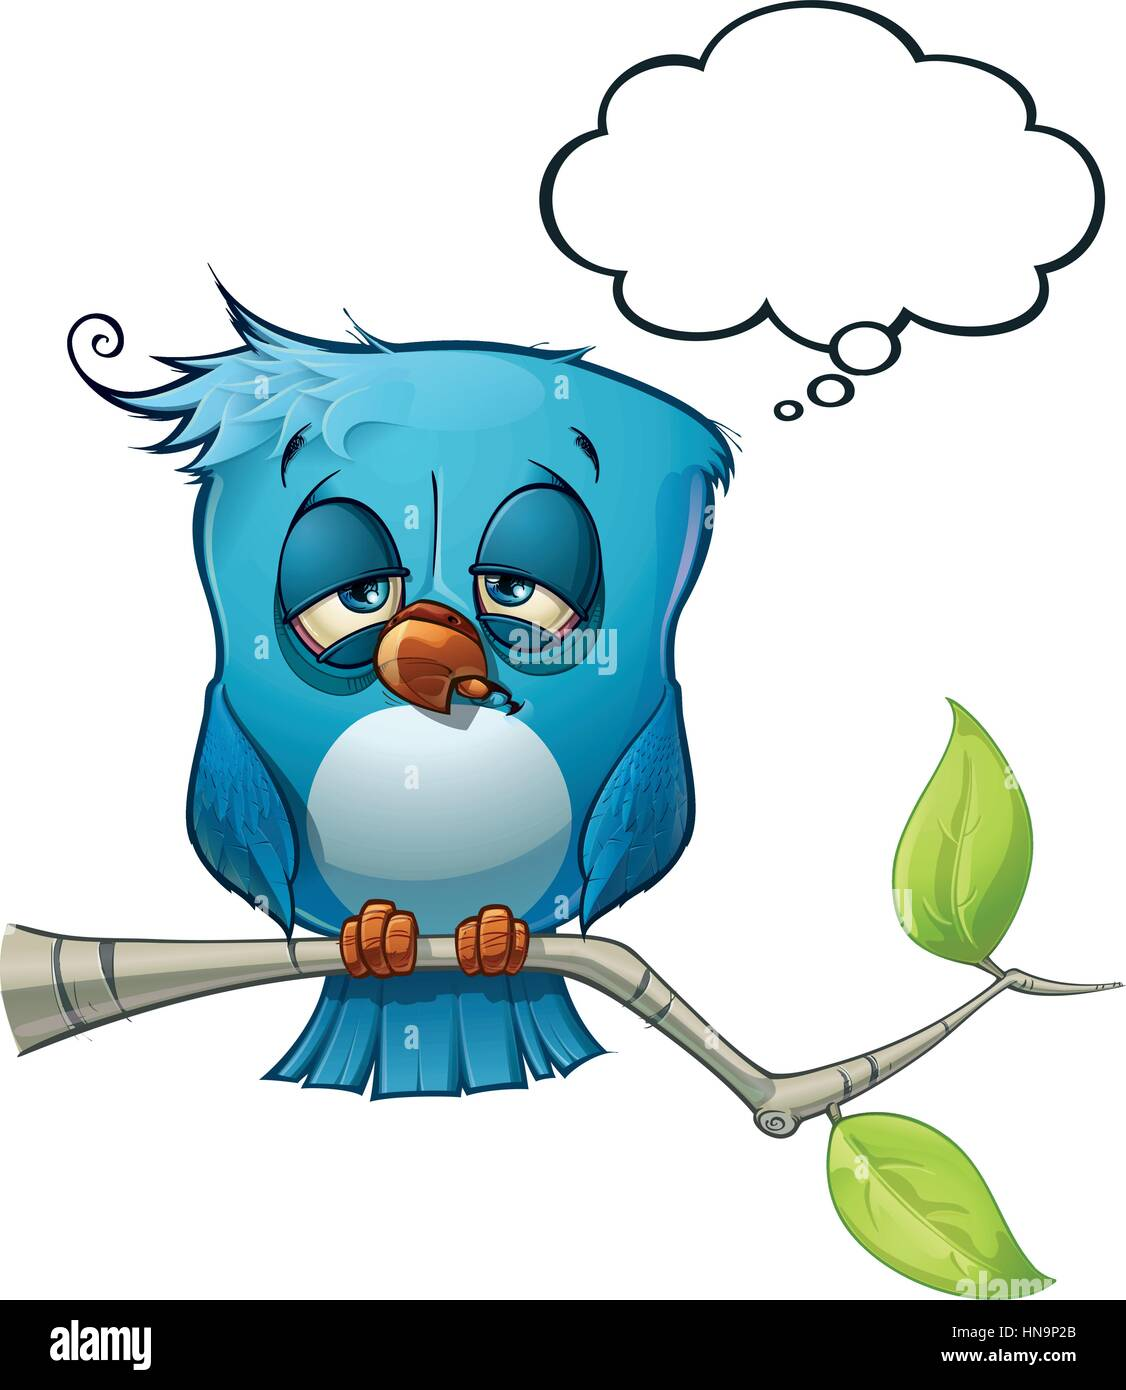 A blue bird communicates with style comments or opinions to the world! - Stock Image